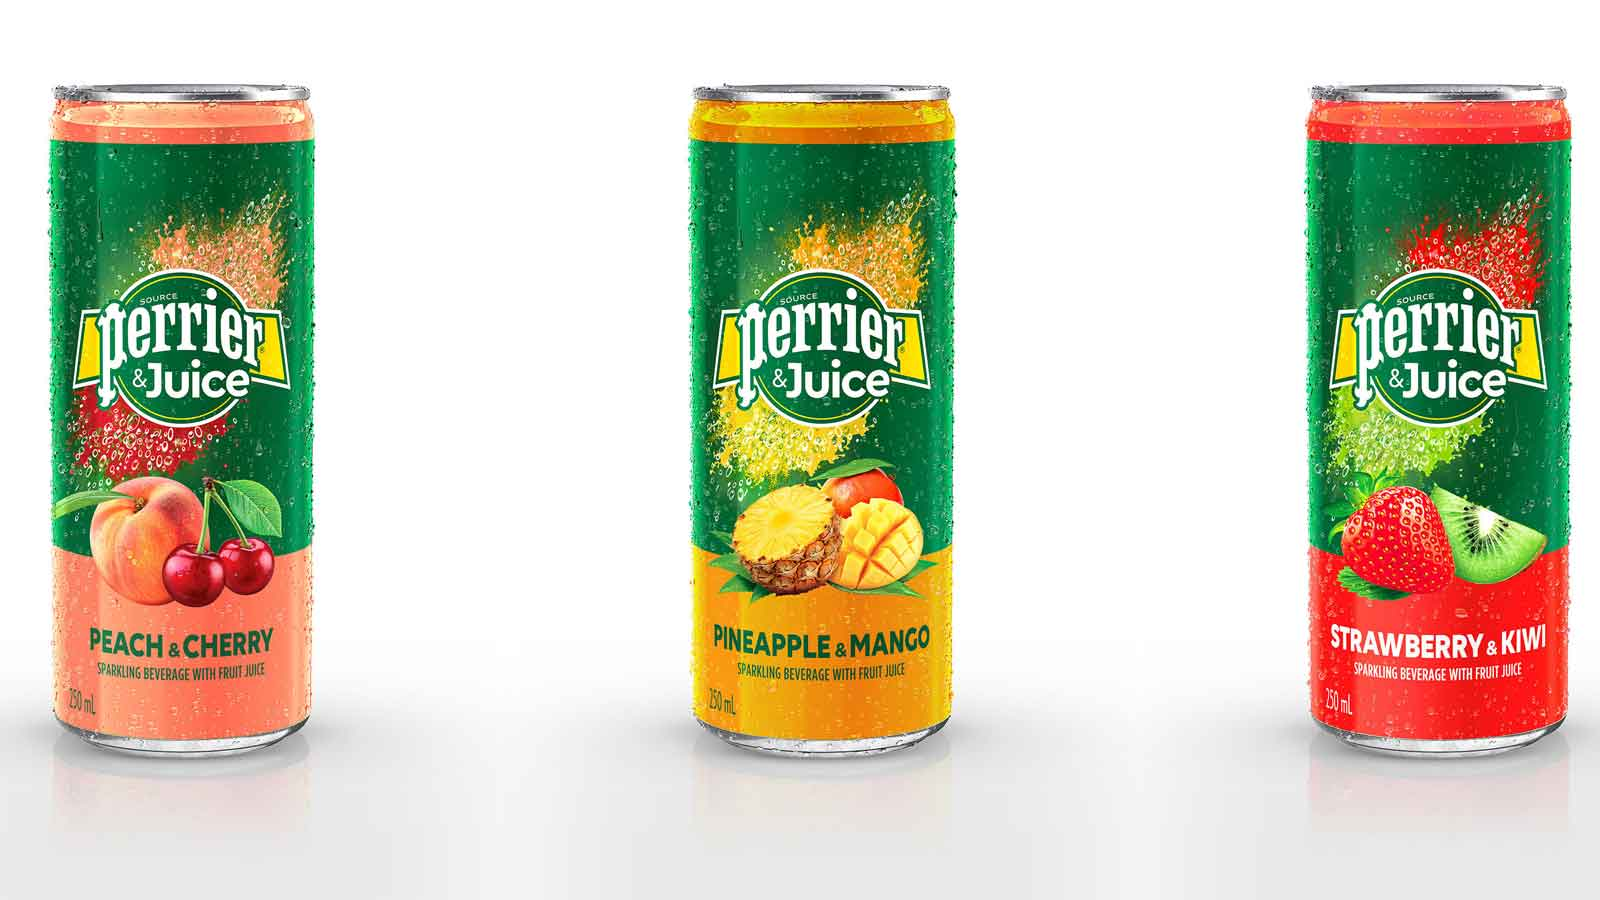 Perrier launches latest innovation, Perrier & Juice